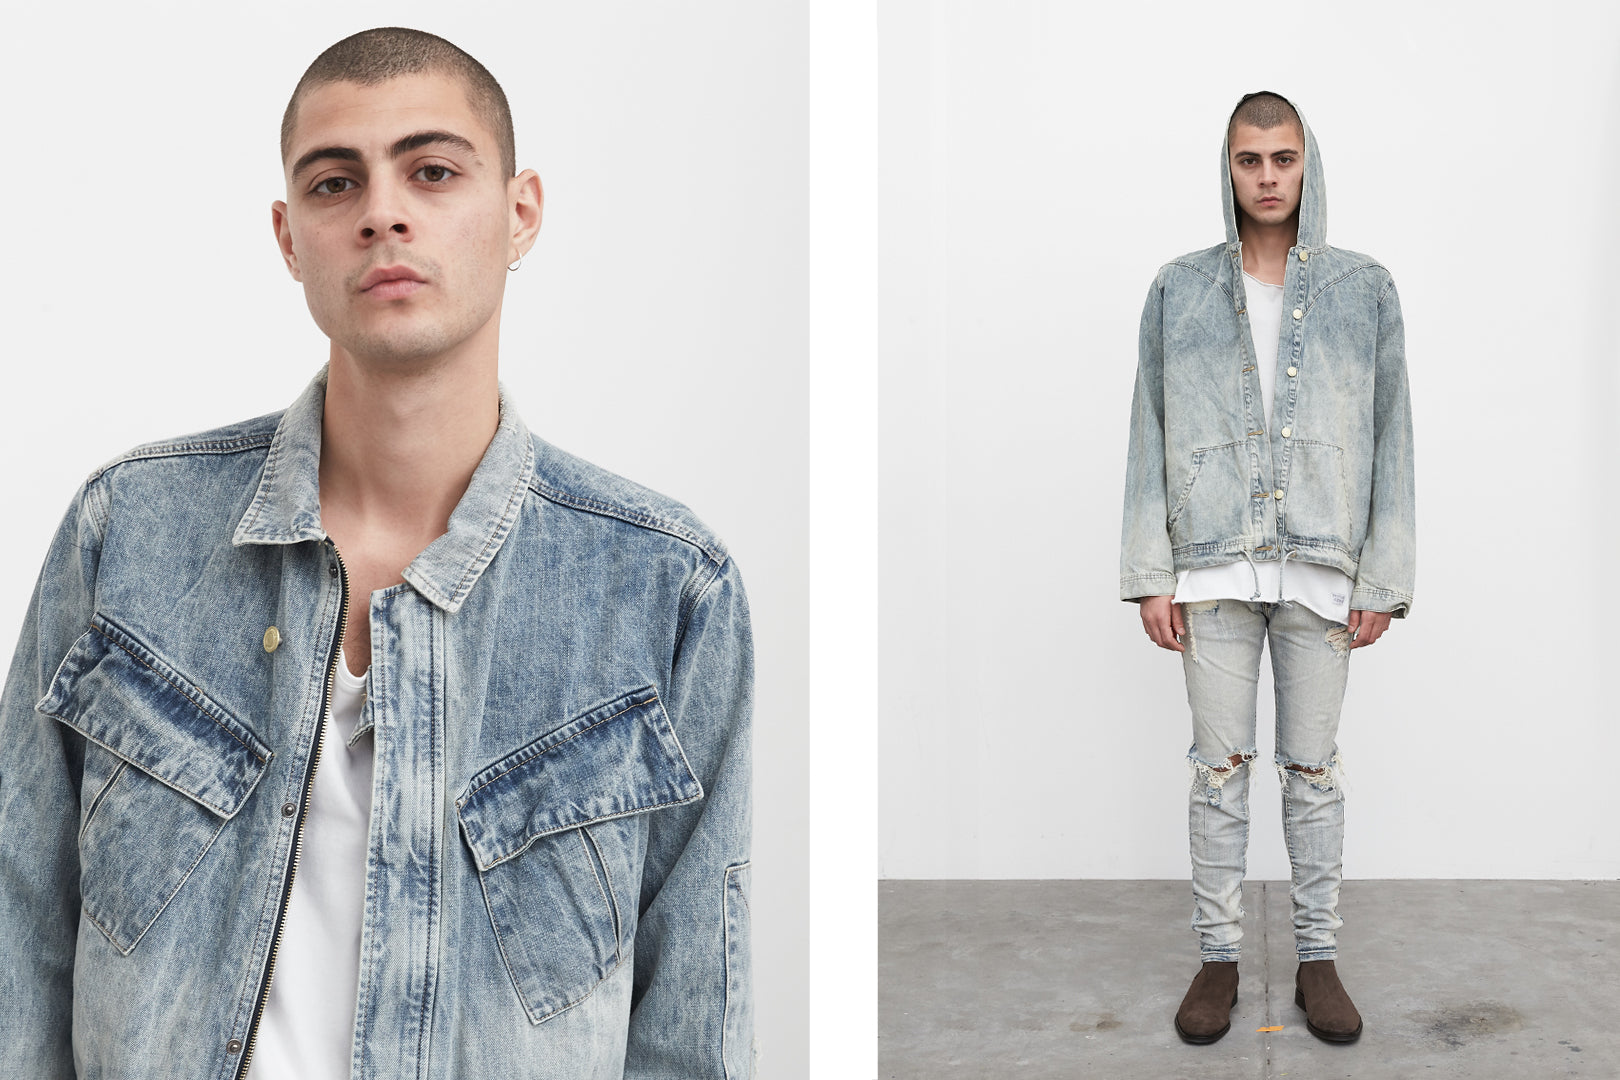 denim outerwear by profound aesthetic